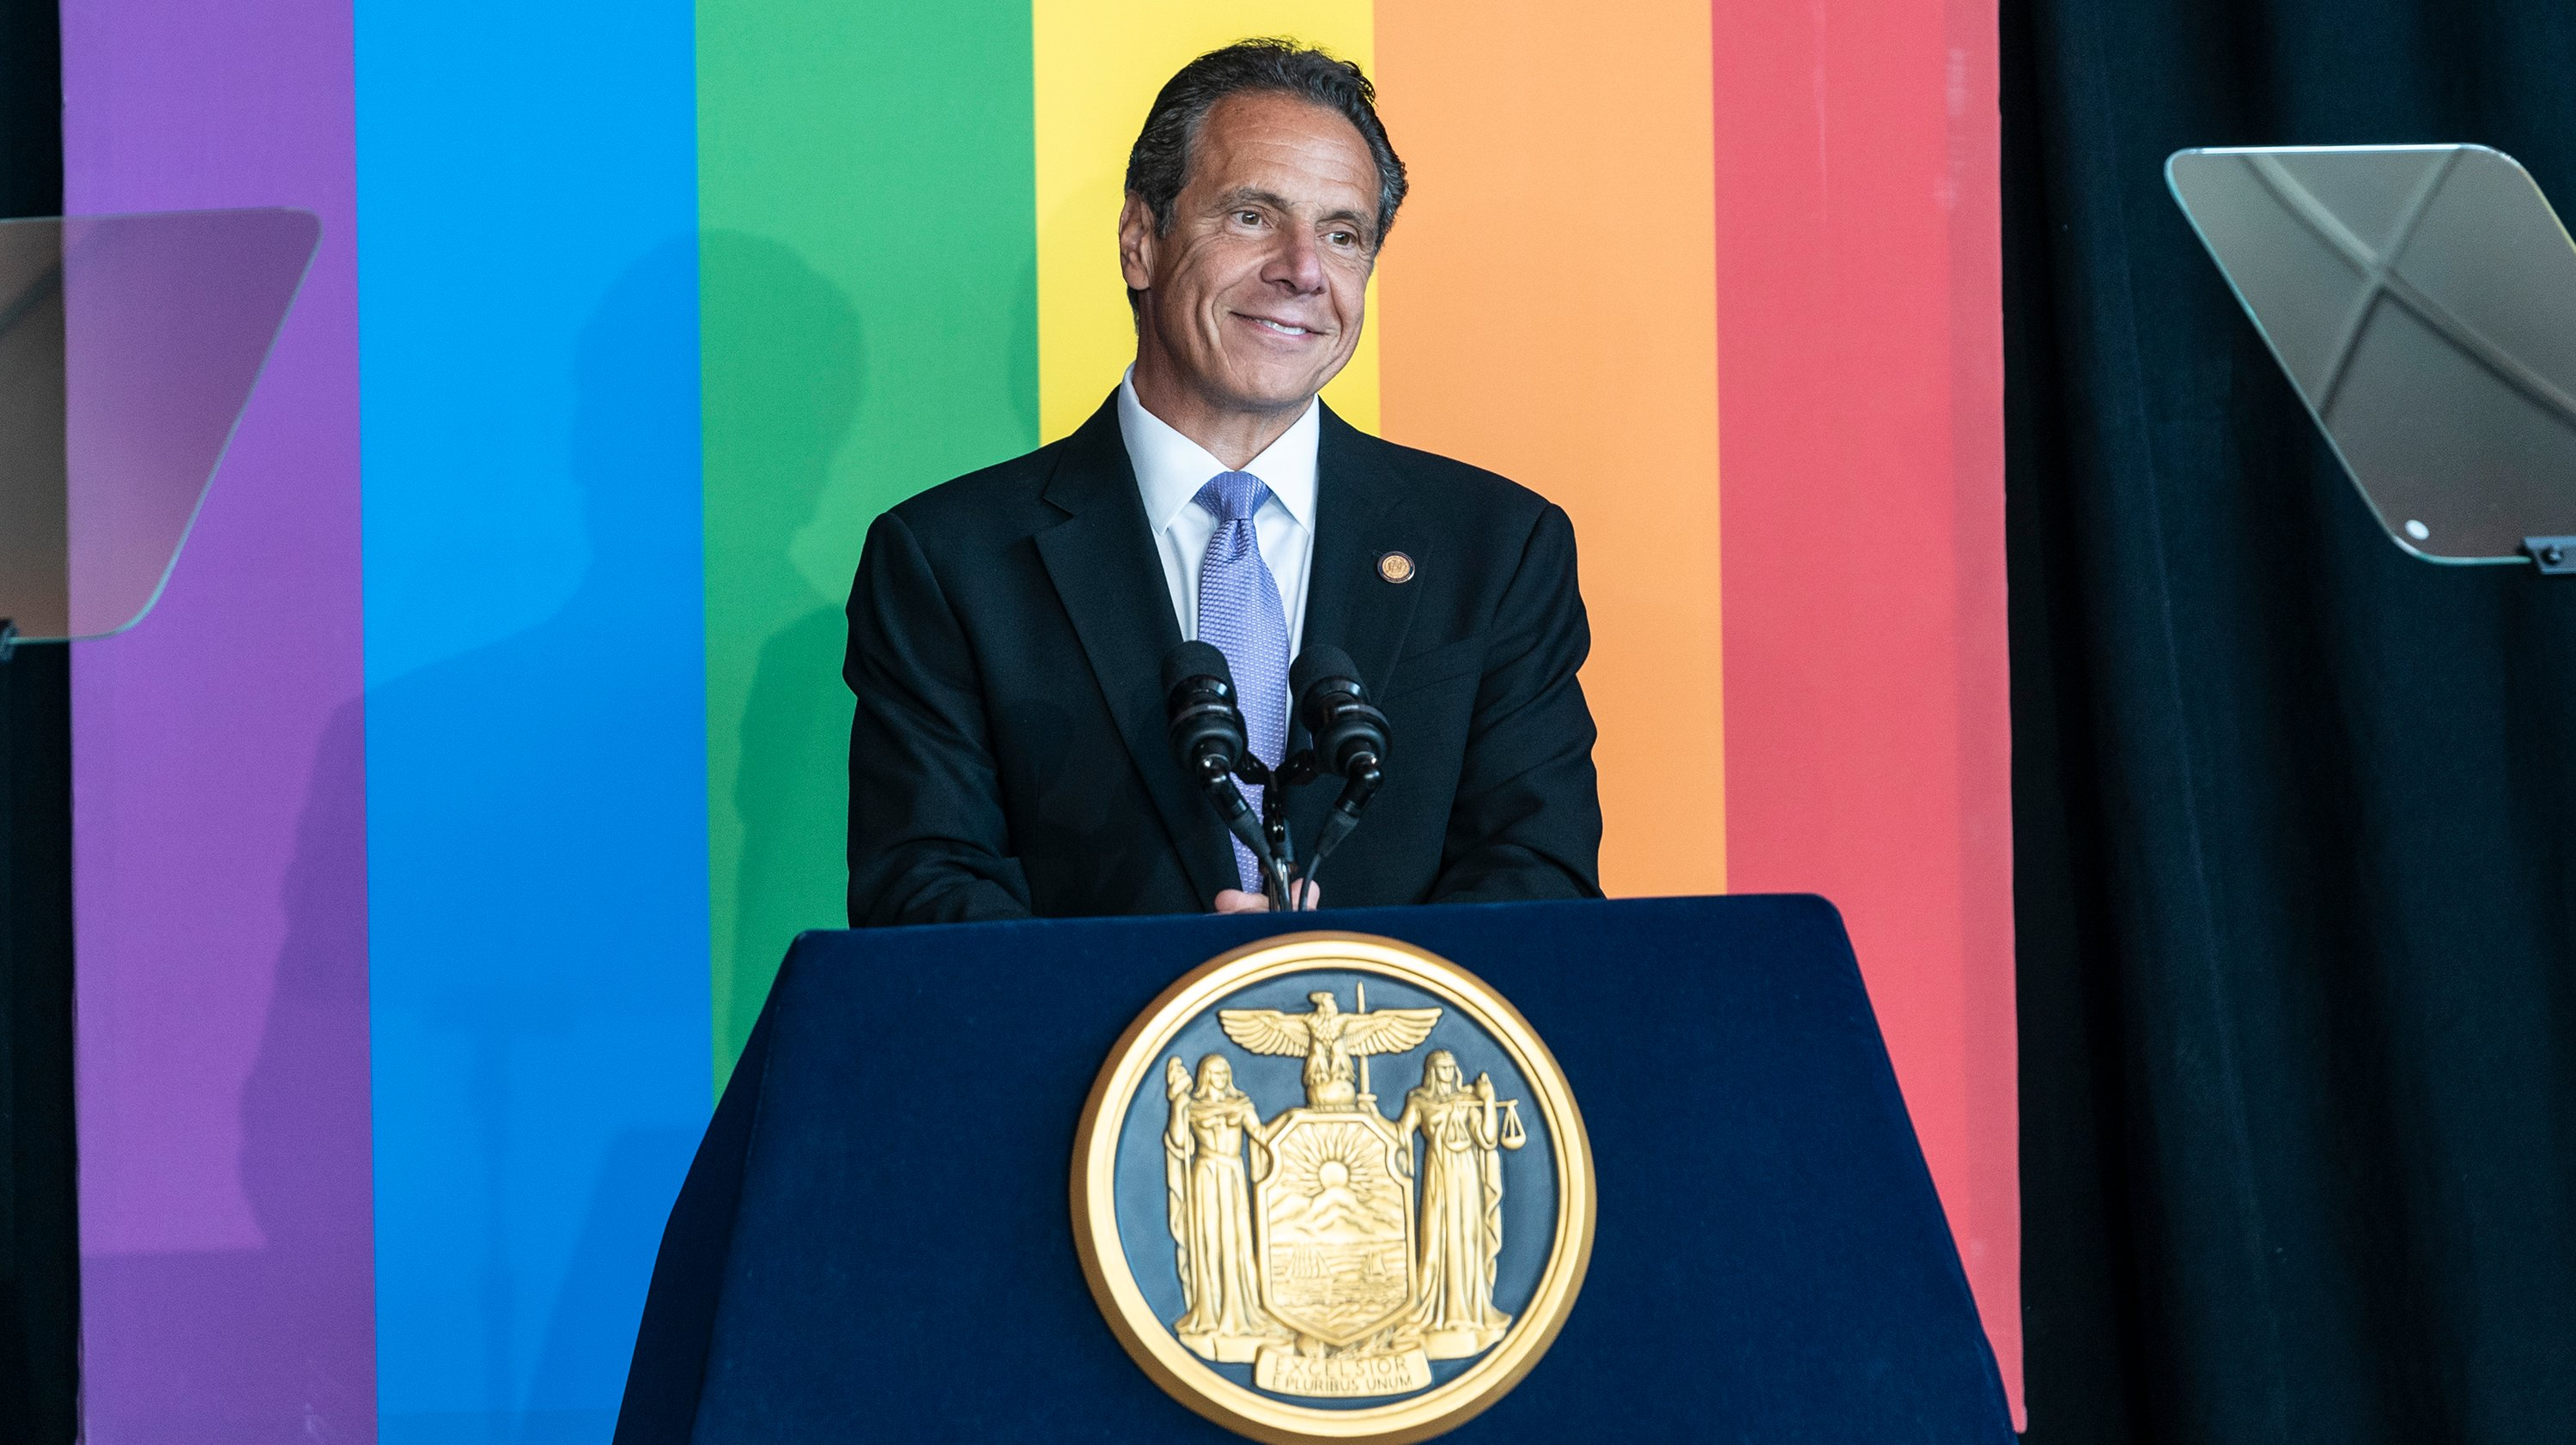 Governor Cuomo and members of LGBTQ community celebrate 10